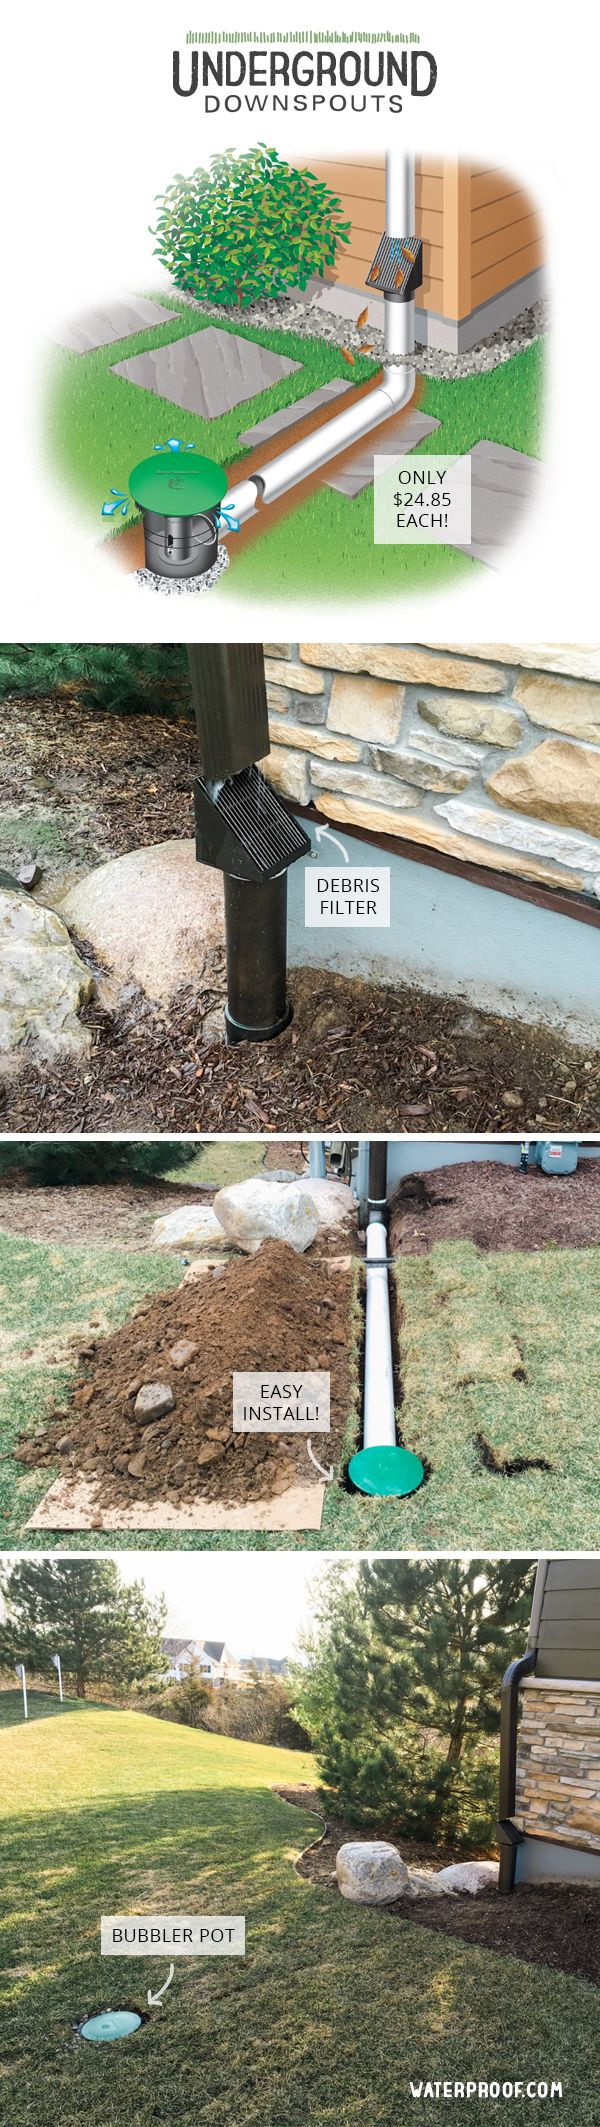 How to install a downspout in a gutter - Underground Downspouts Are Easy To Install Mow Right Over